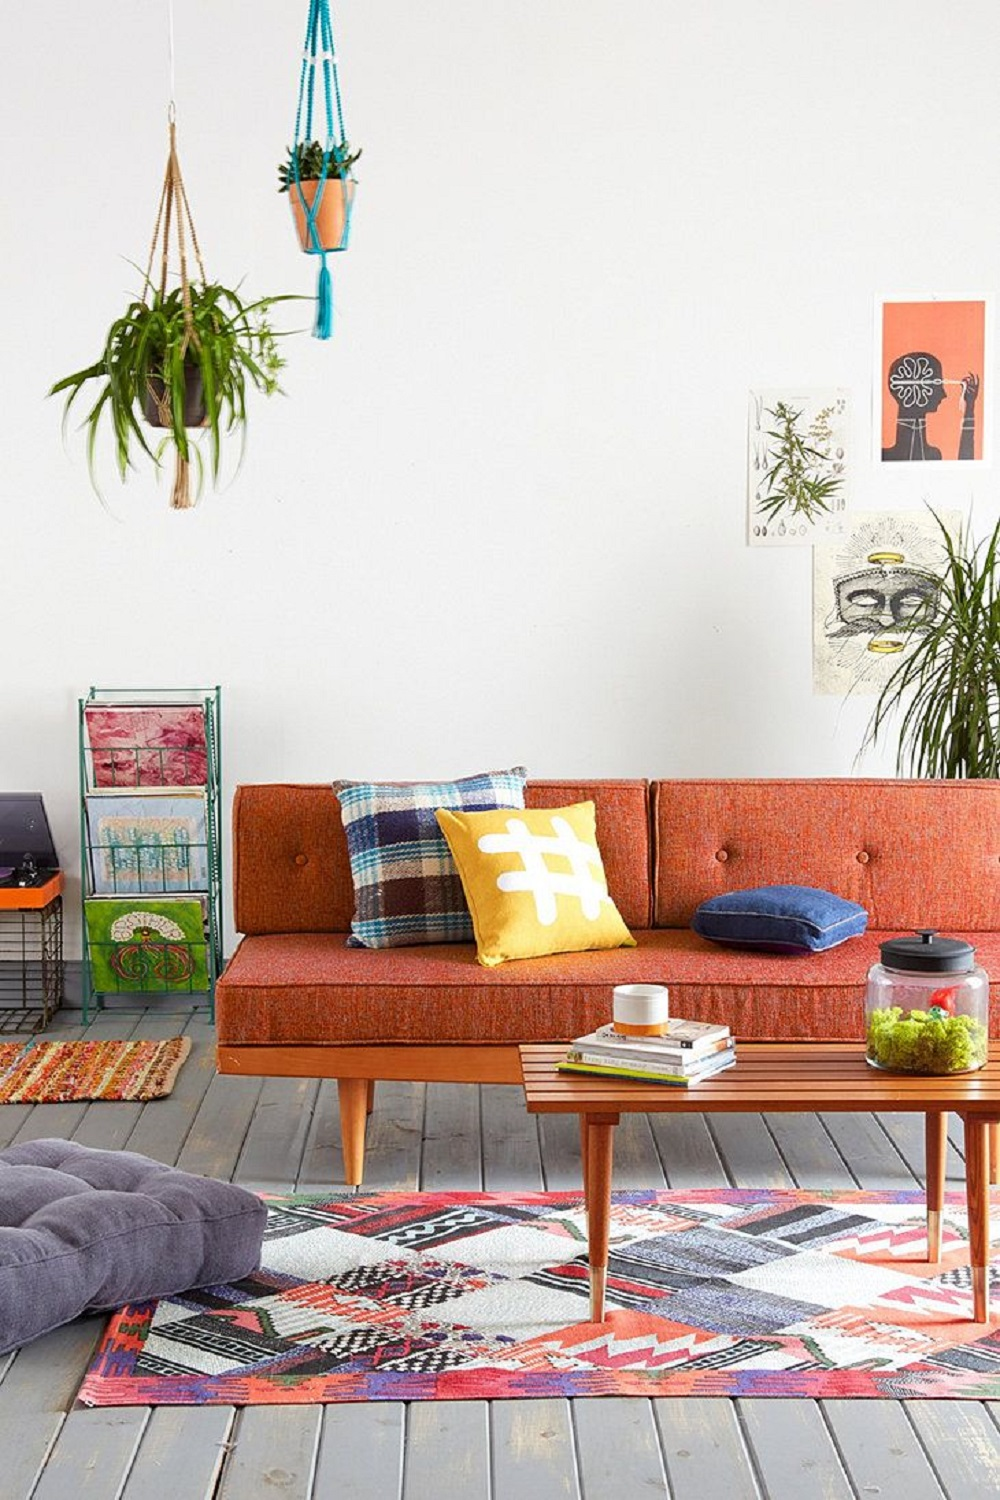 Urban outfitters showcases eclectic retro furniture styles for Eclectic style furniture